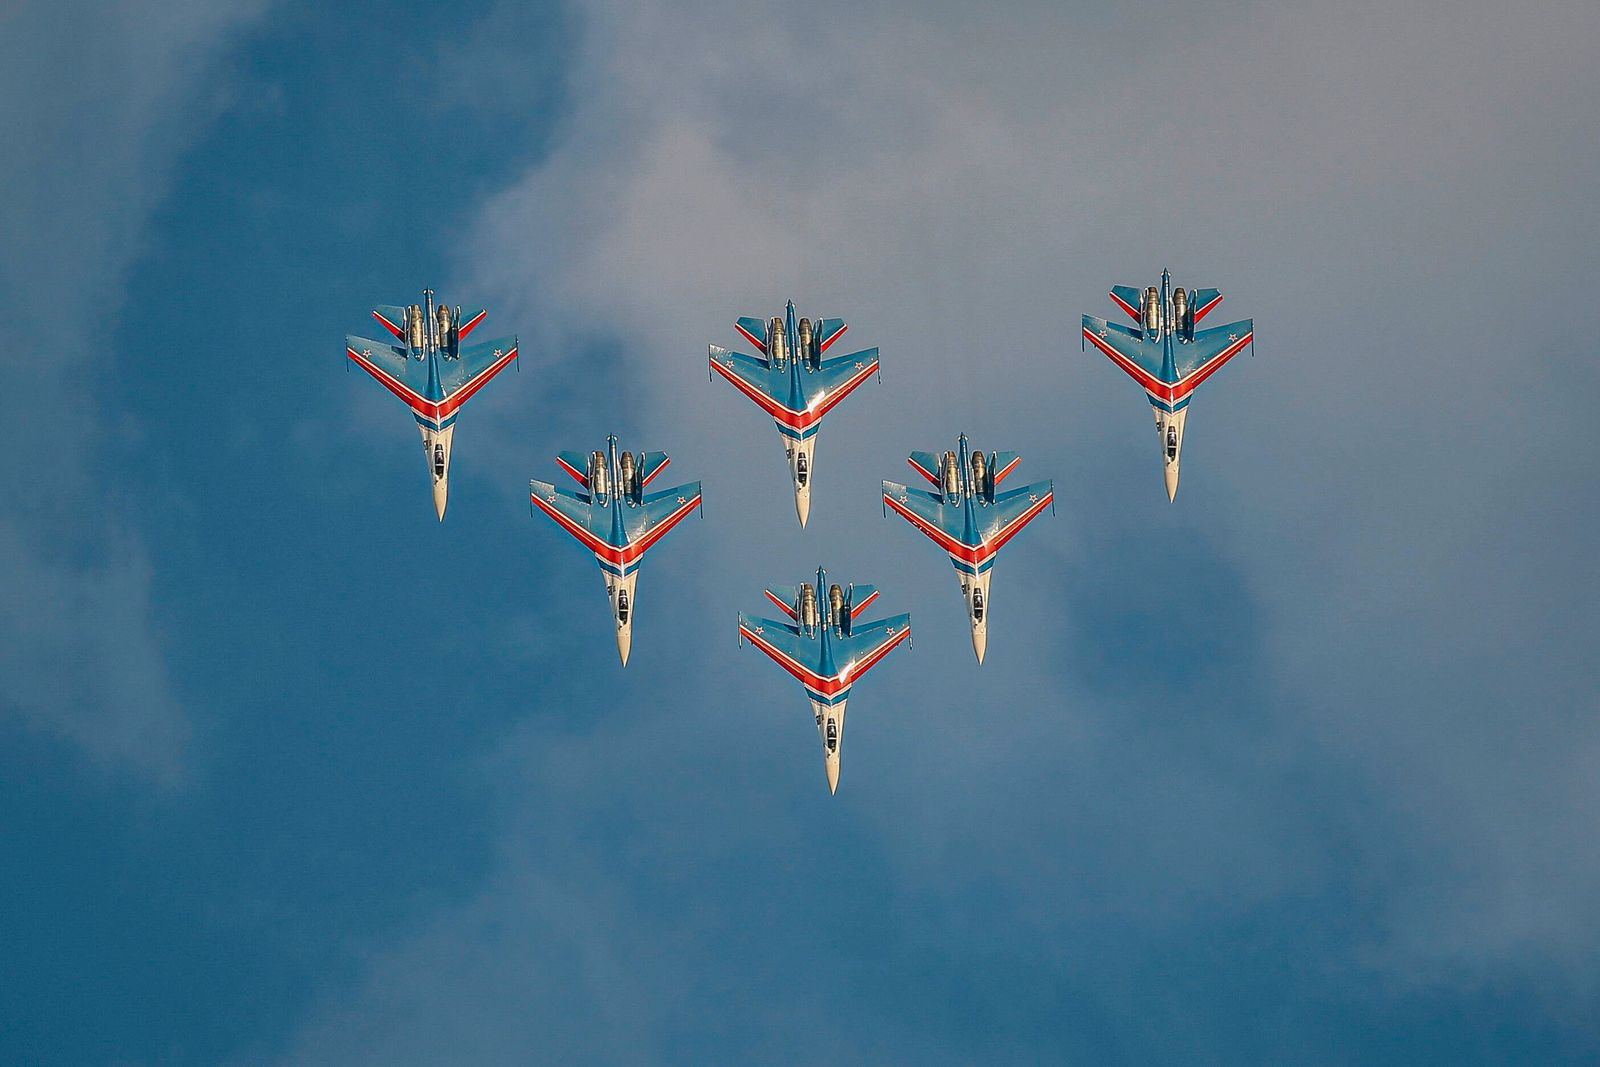 (210720) -- MOSCOW, July 20, 2021 -- The Russian Knights aerobatic demonstration team performs during the opening day of